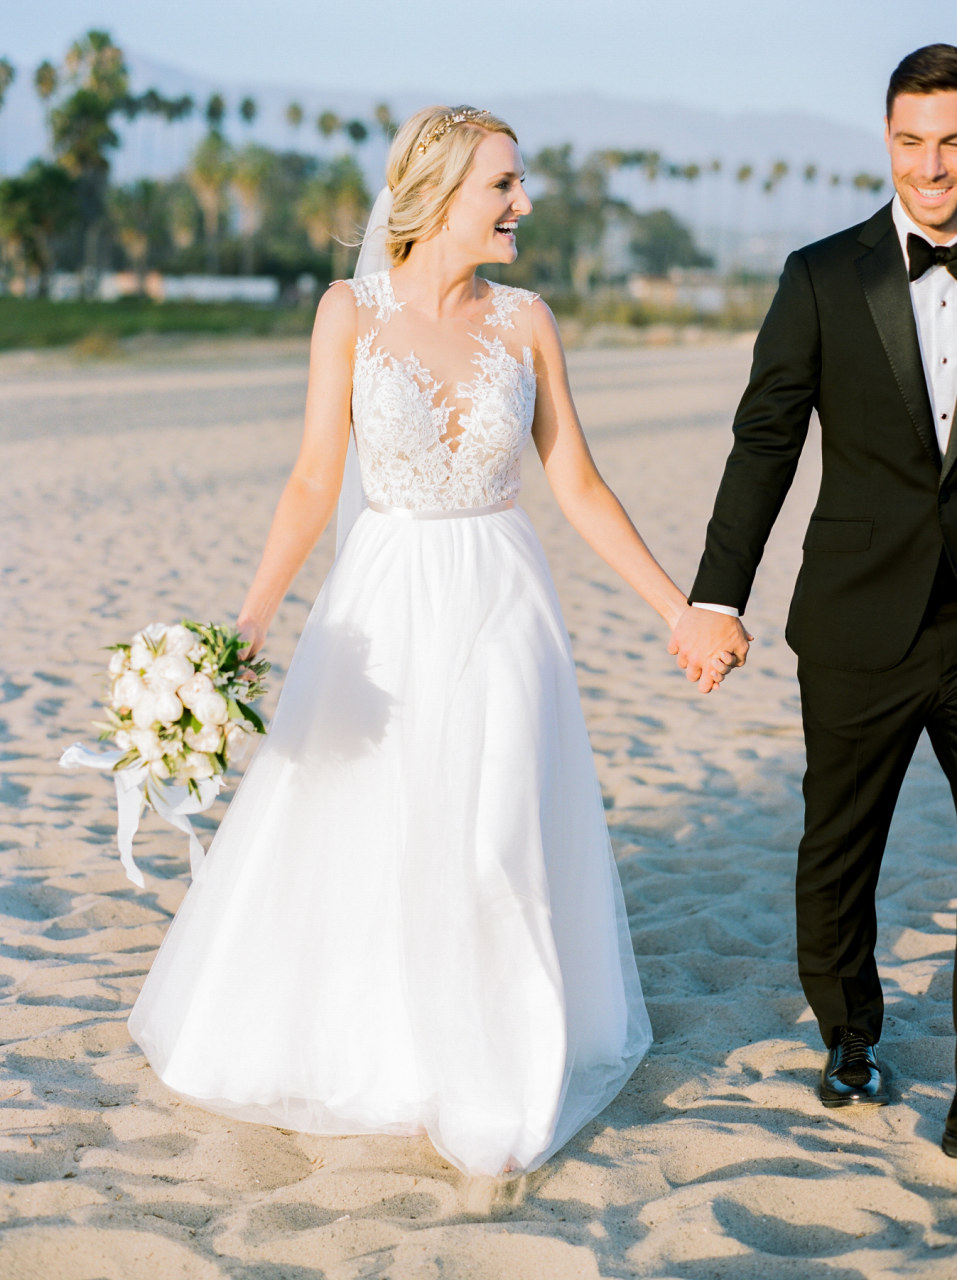 alegria-by-design-wedding-planner-planning-event-design-coordinator-day-of-canary-hotel-rooftop-beach-view-downtown-santa-barbara (22).jpg